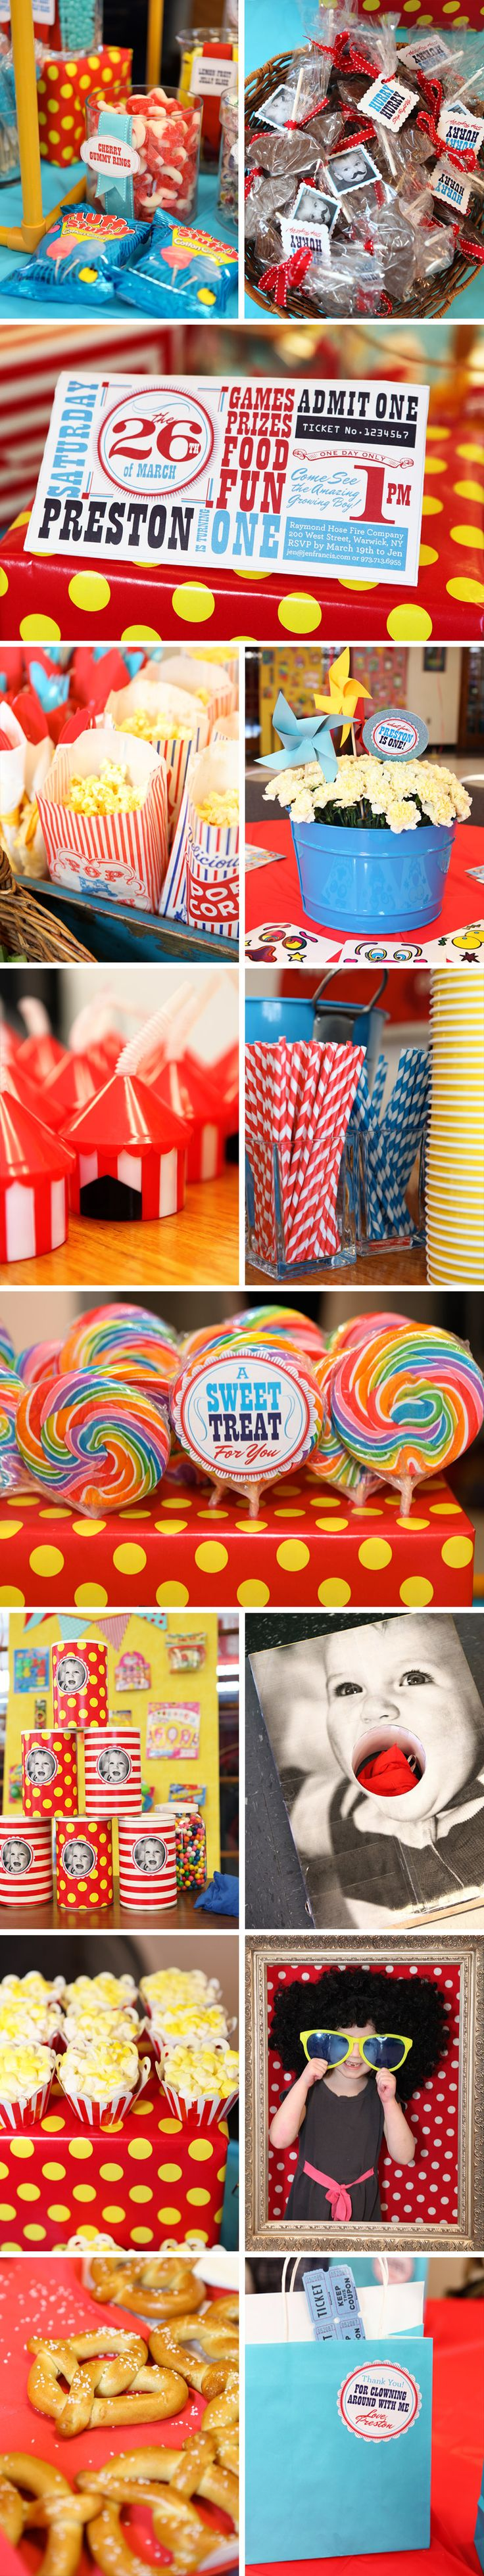 Best Circus Party Foods Ideas On Pinterest Circus Food - Circus birthday party ideas pinterest